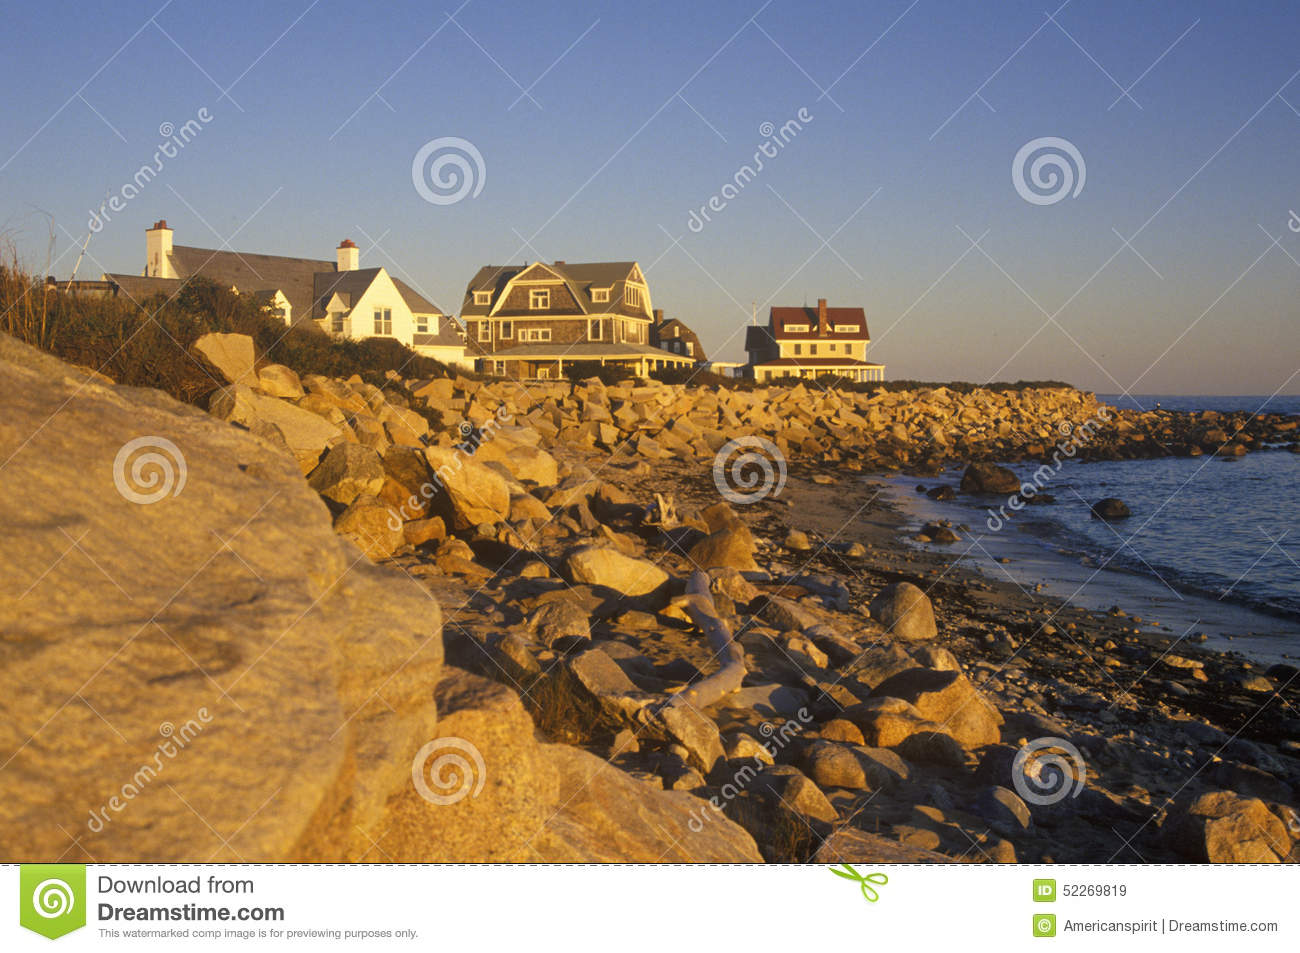 Ocean front home on Scenic route 1 at sunset, Misquamicut, RI